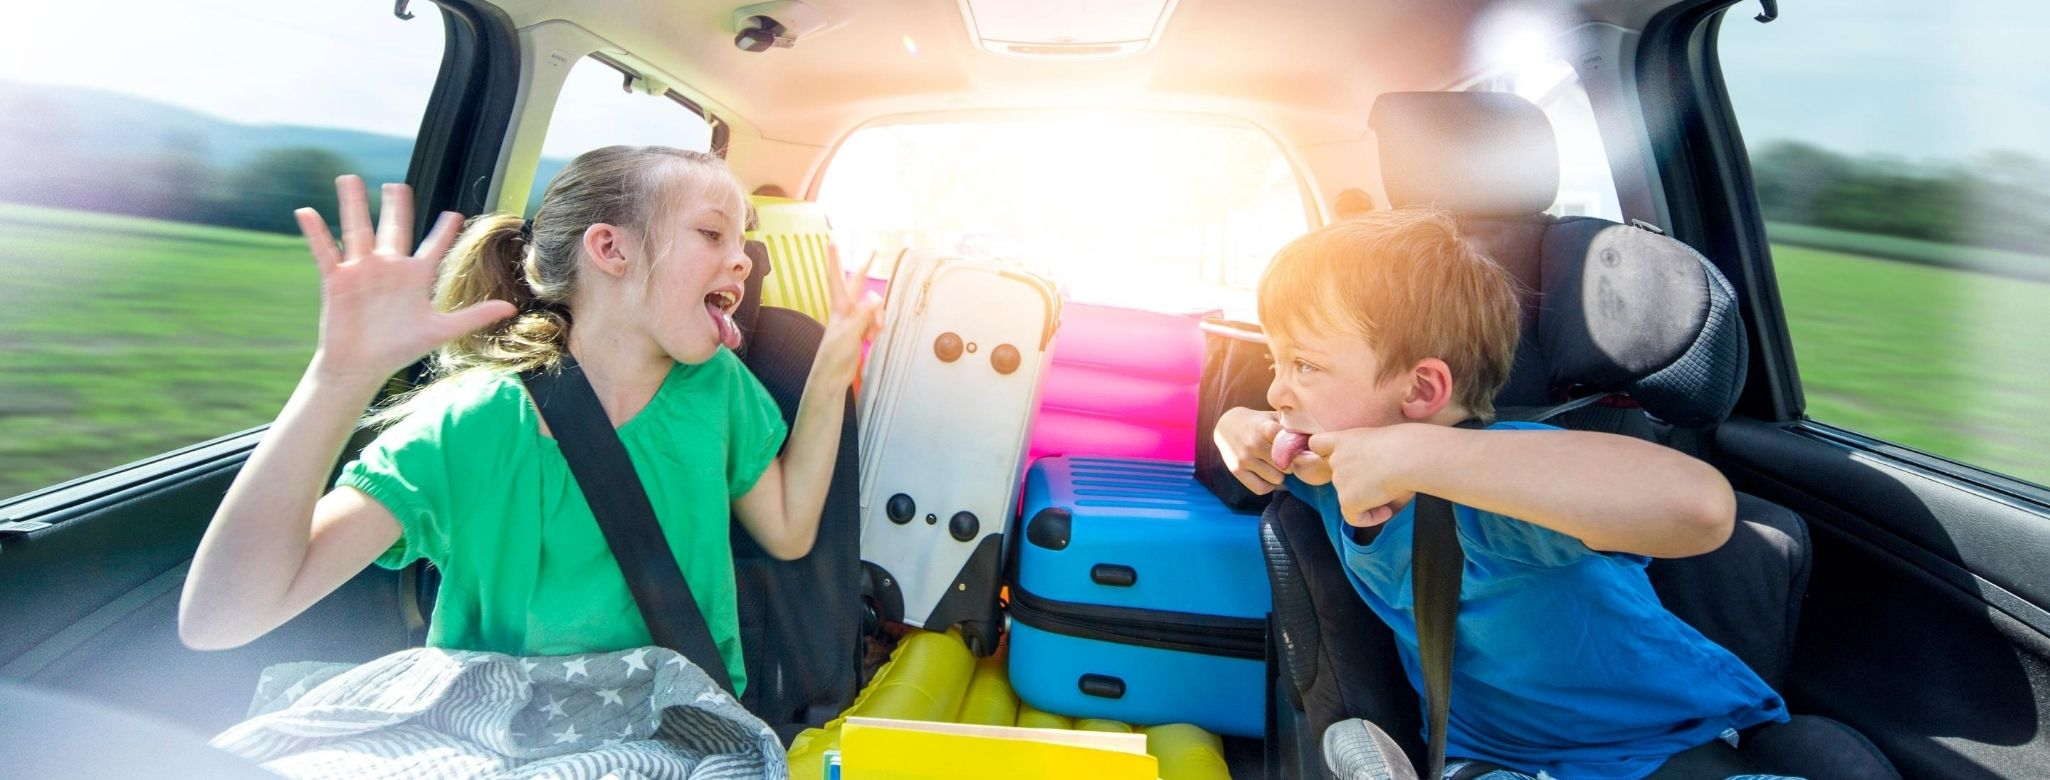 Car journey with kids